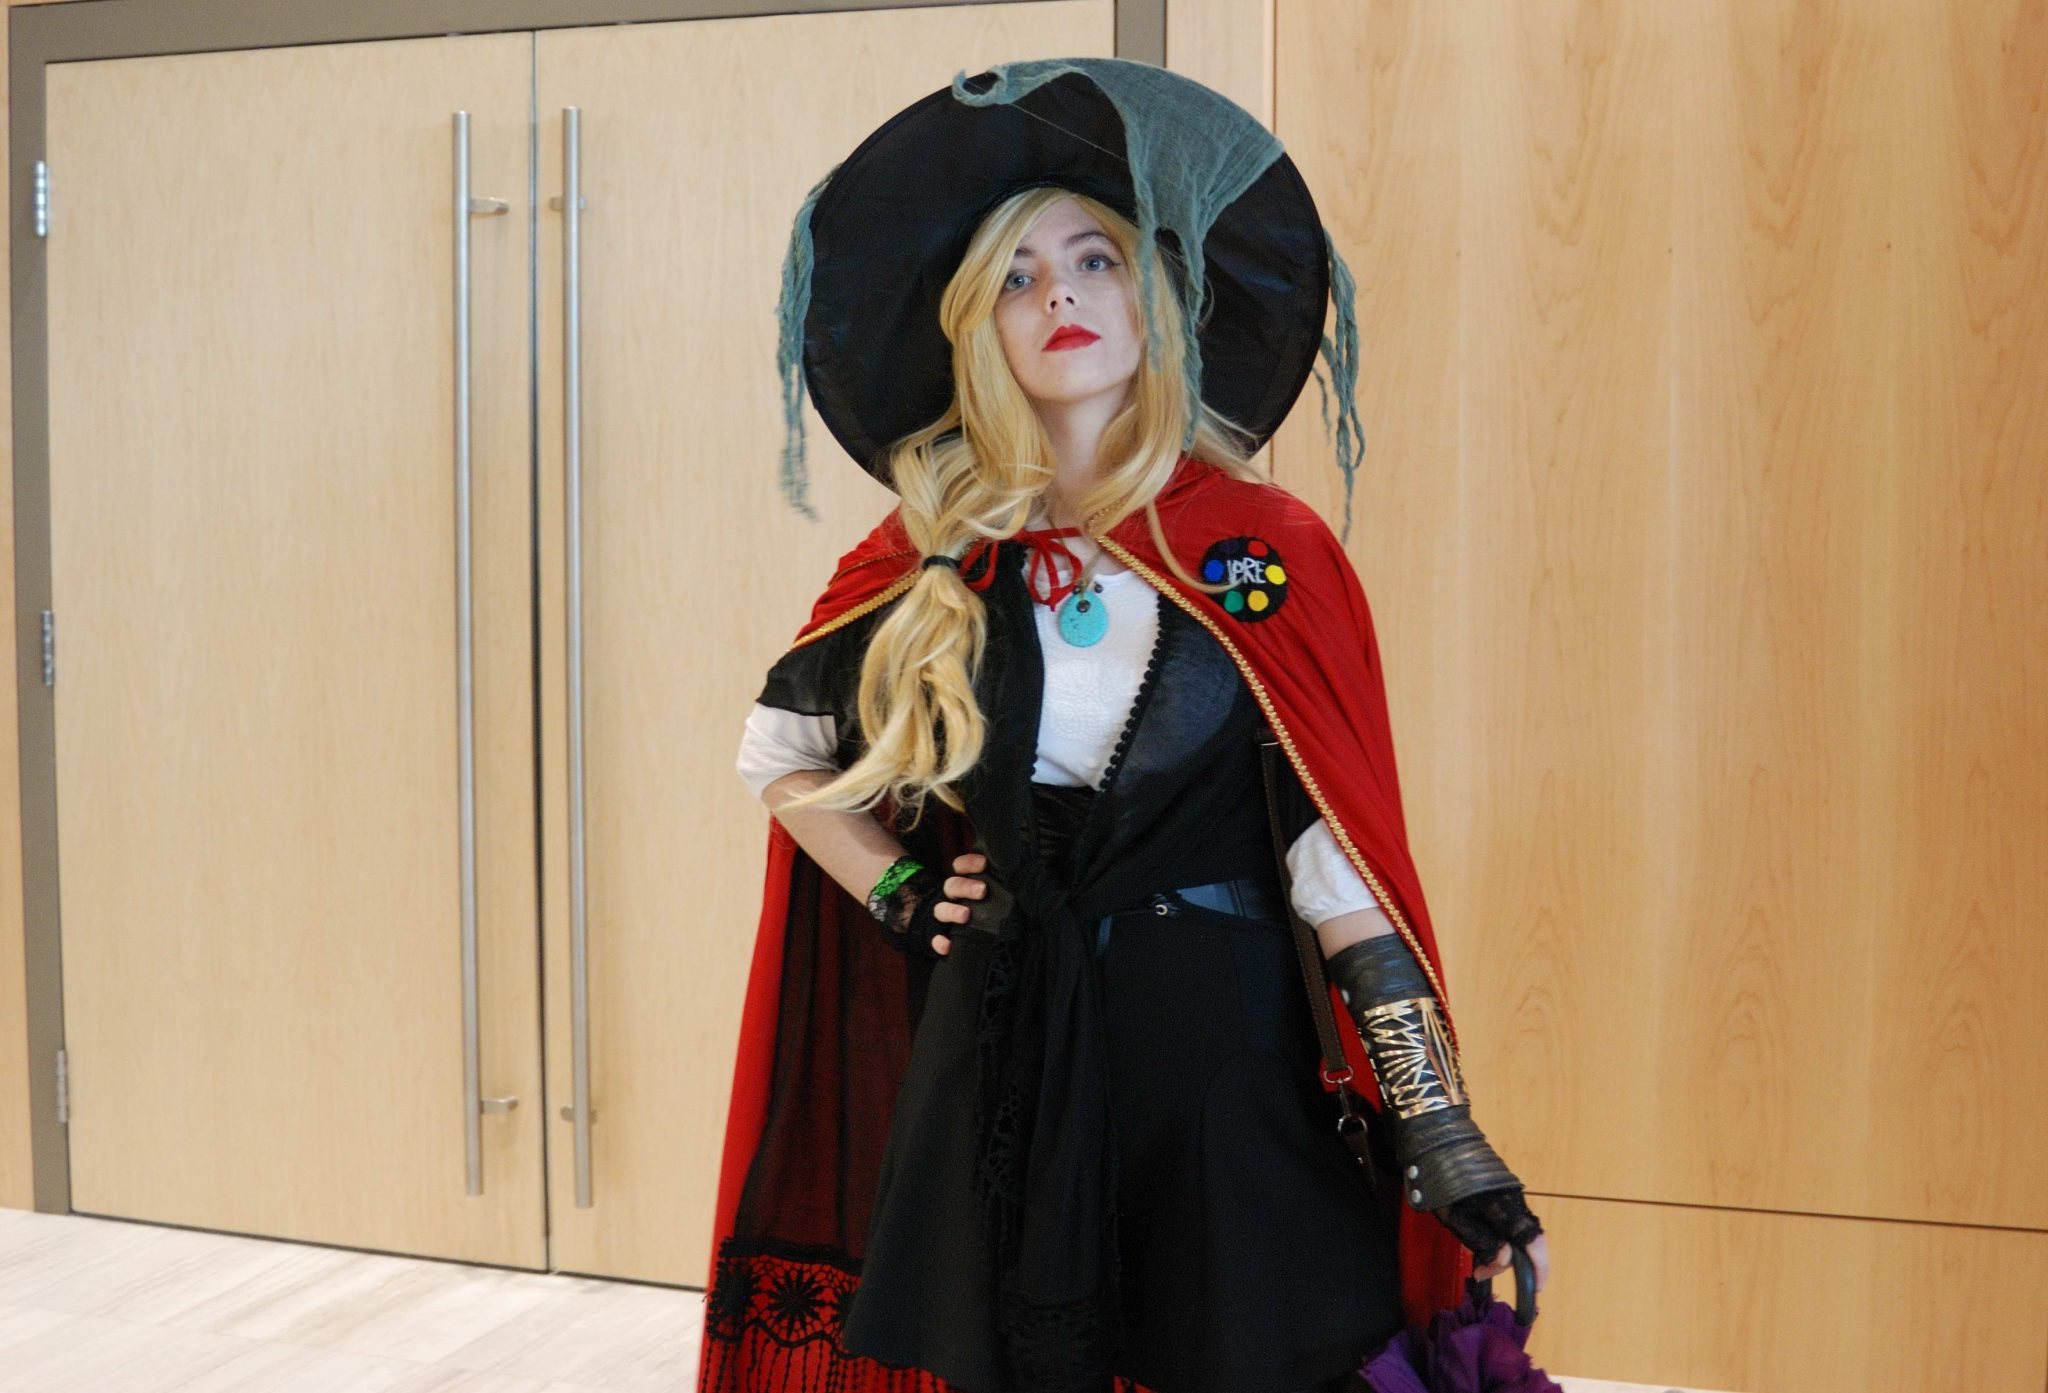 Forest City Comicon 2018 Riley Wray as Taako from the Adventure Zone at Forest City Comicon in London, Ontario.